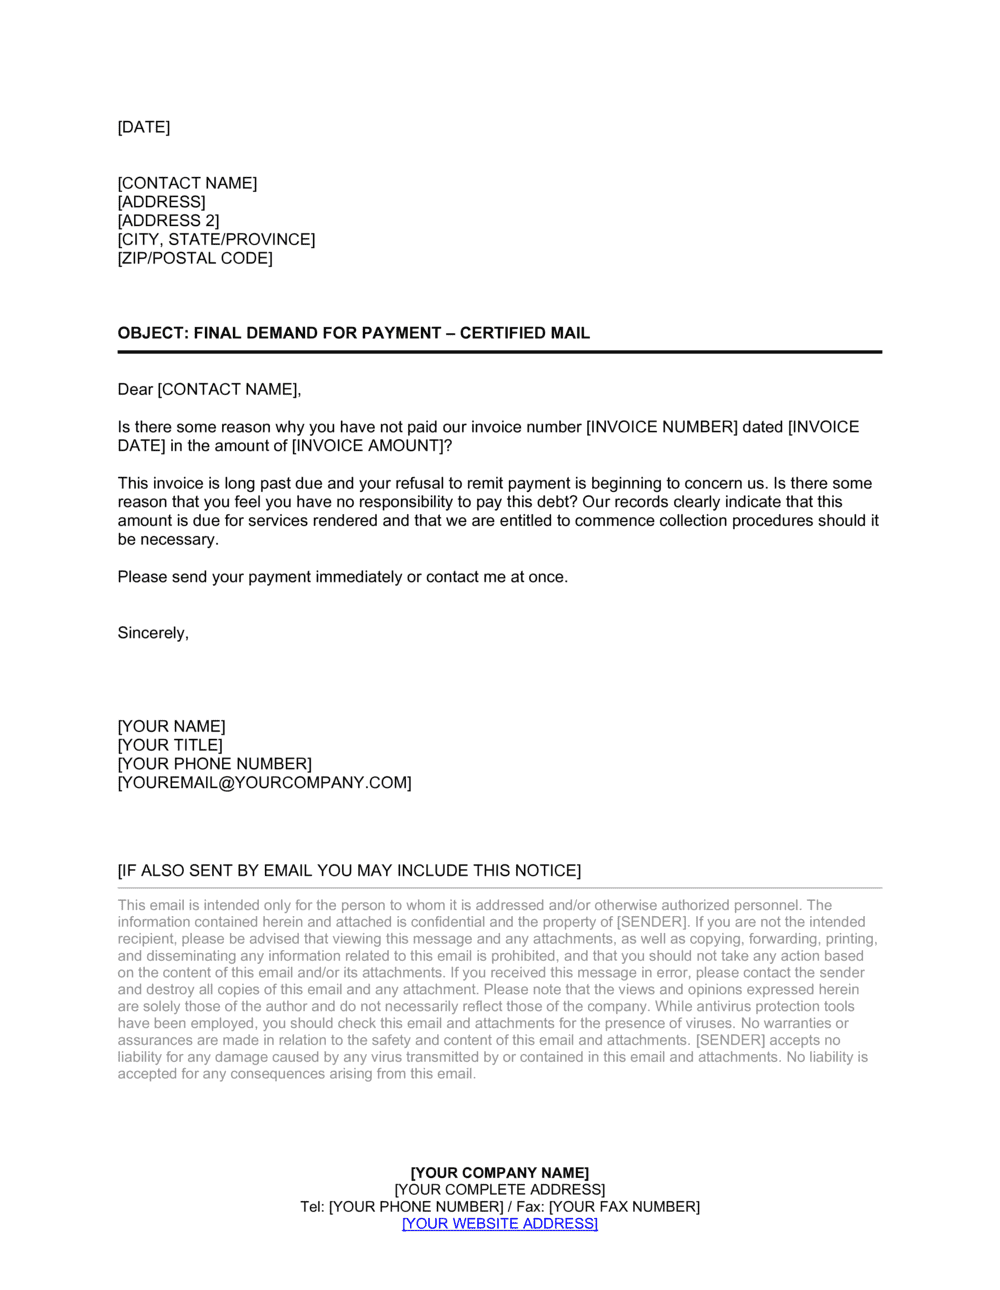 Business-in-a-Box's Collection Letter to Eliminate Disputes Template